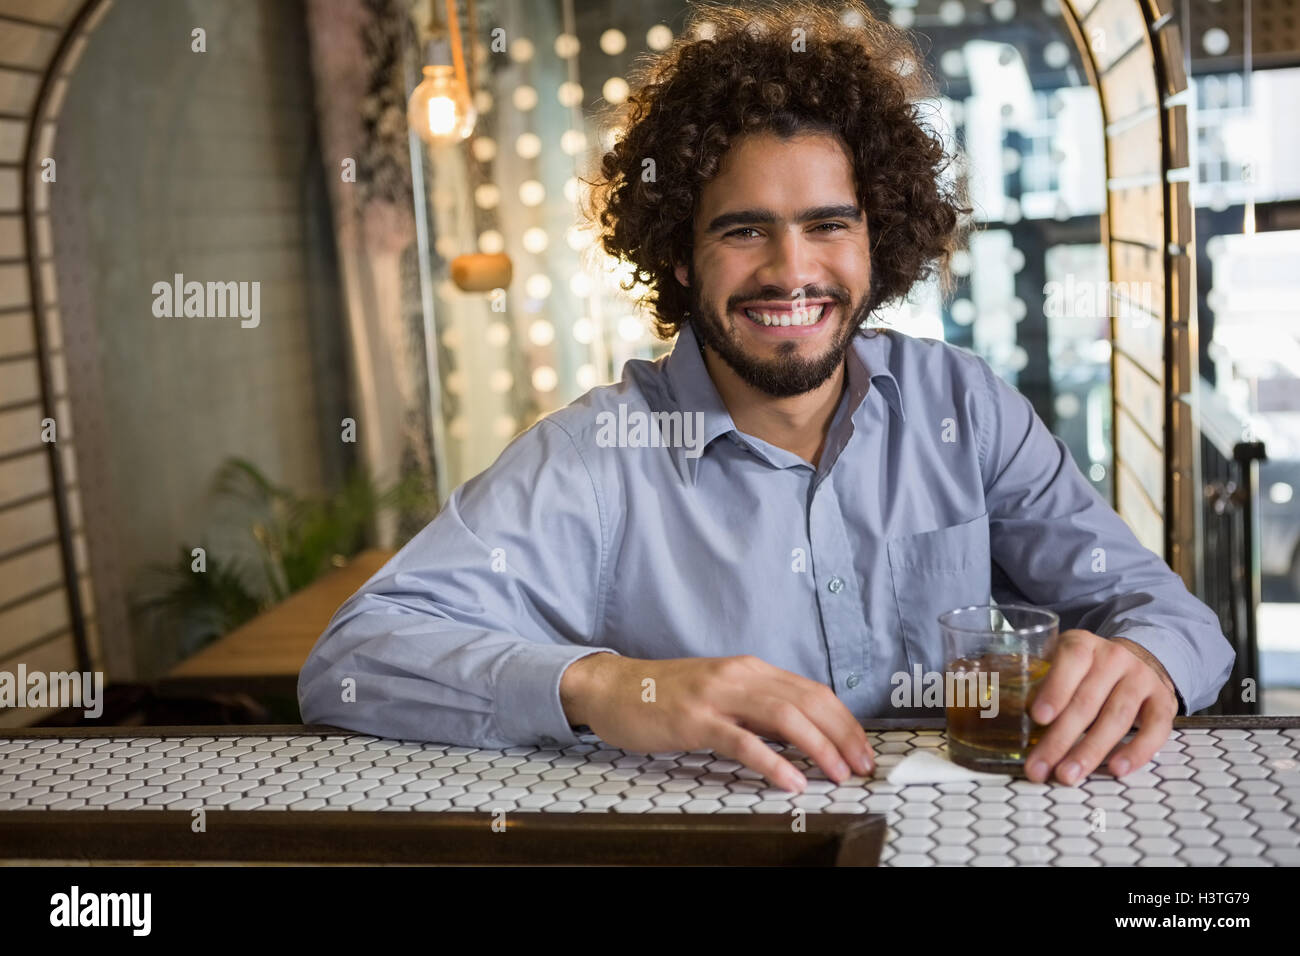 Man sitting on bar counter with glass of whisky - Stock Image